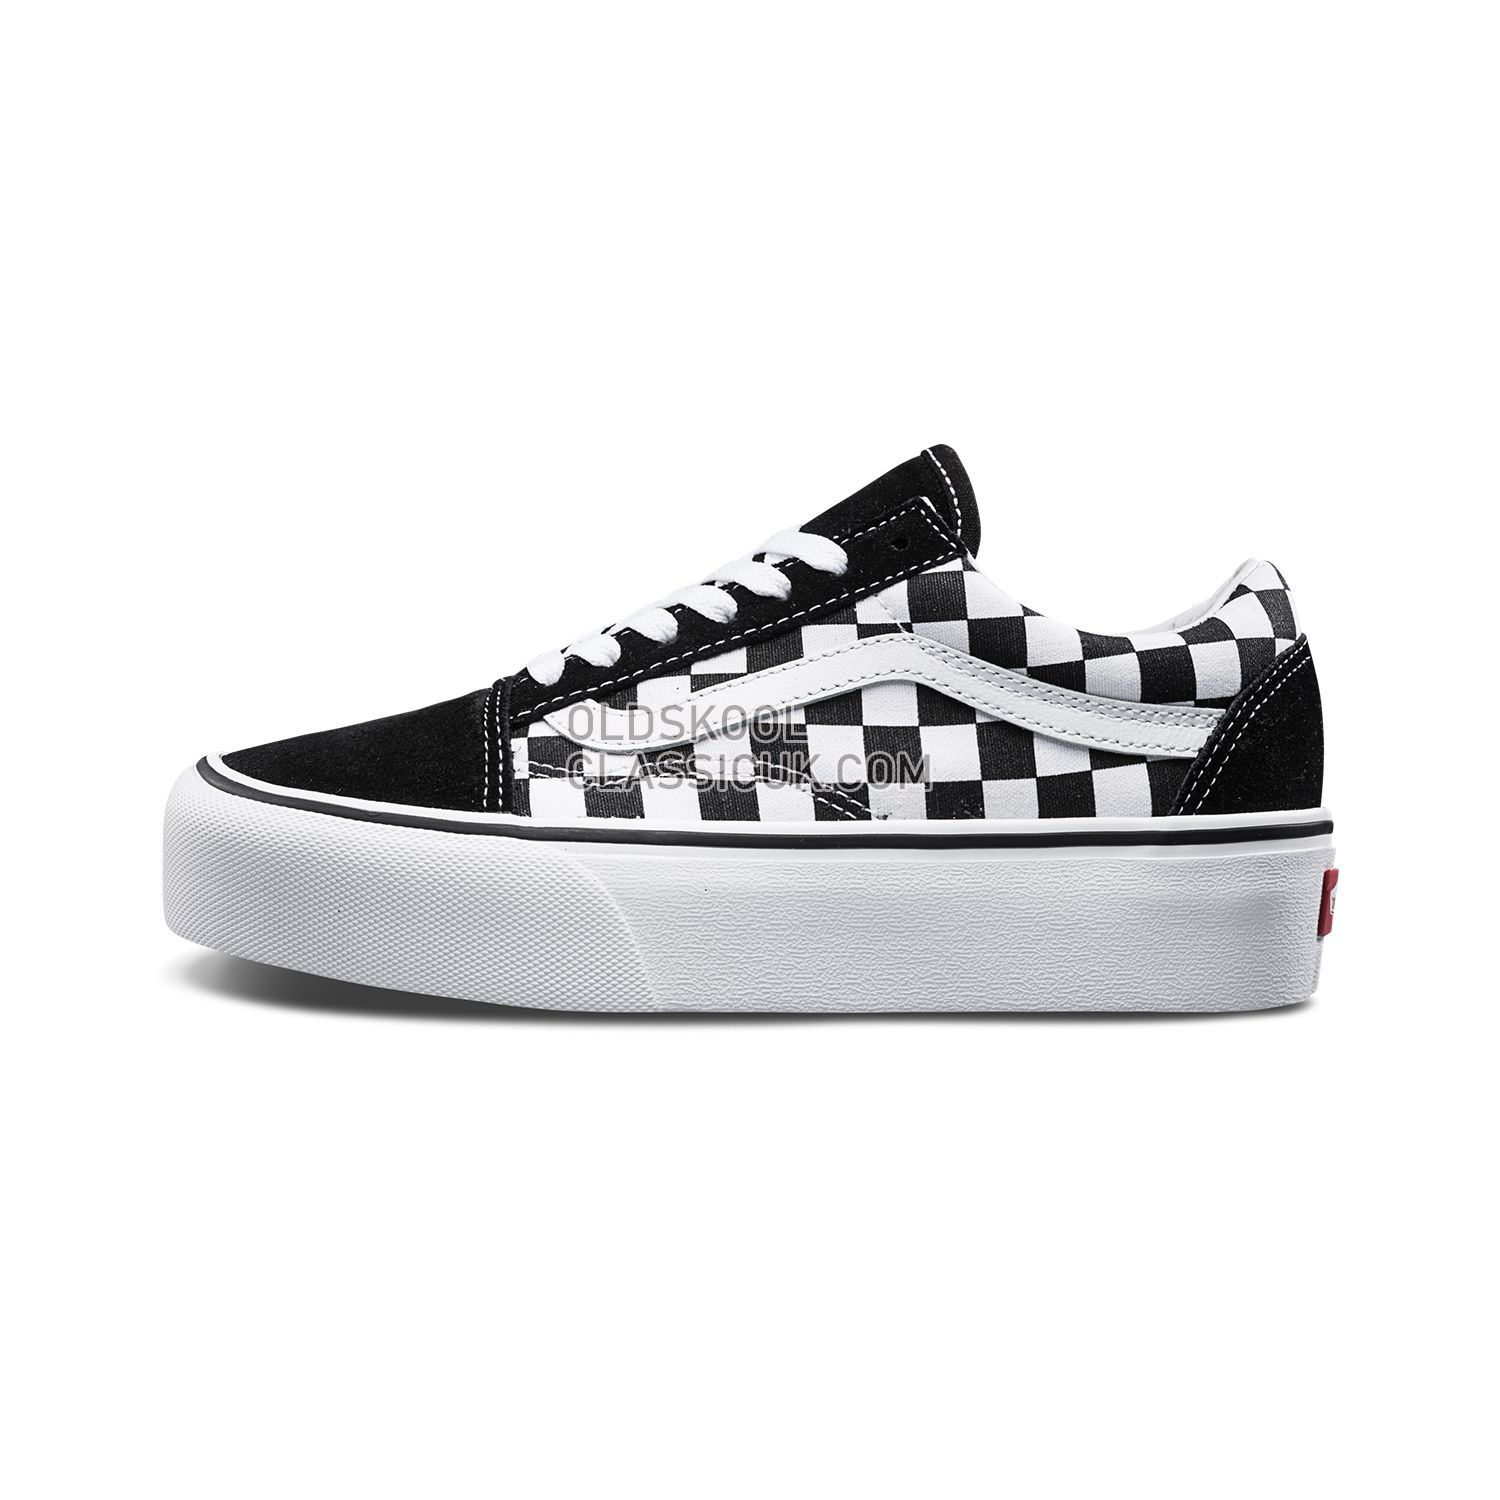 4634106adb16d0 Vans Checkerboardboard Old Skool Platform Sneakers Mens Womens Unisex Black-True  White B3UHRK Shoes ...